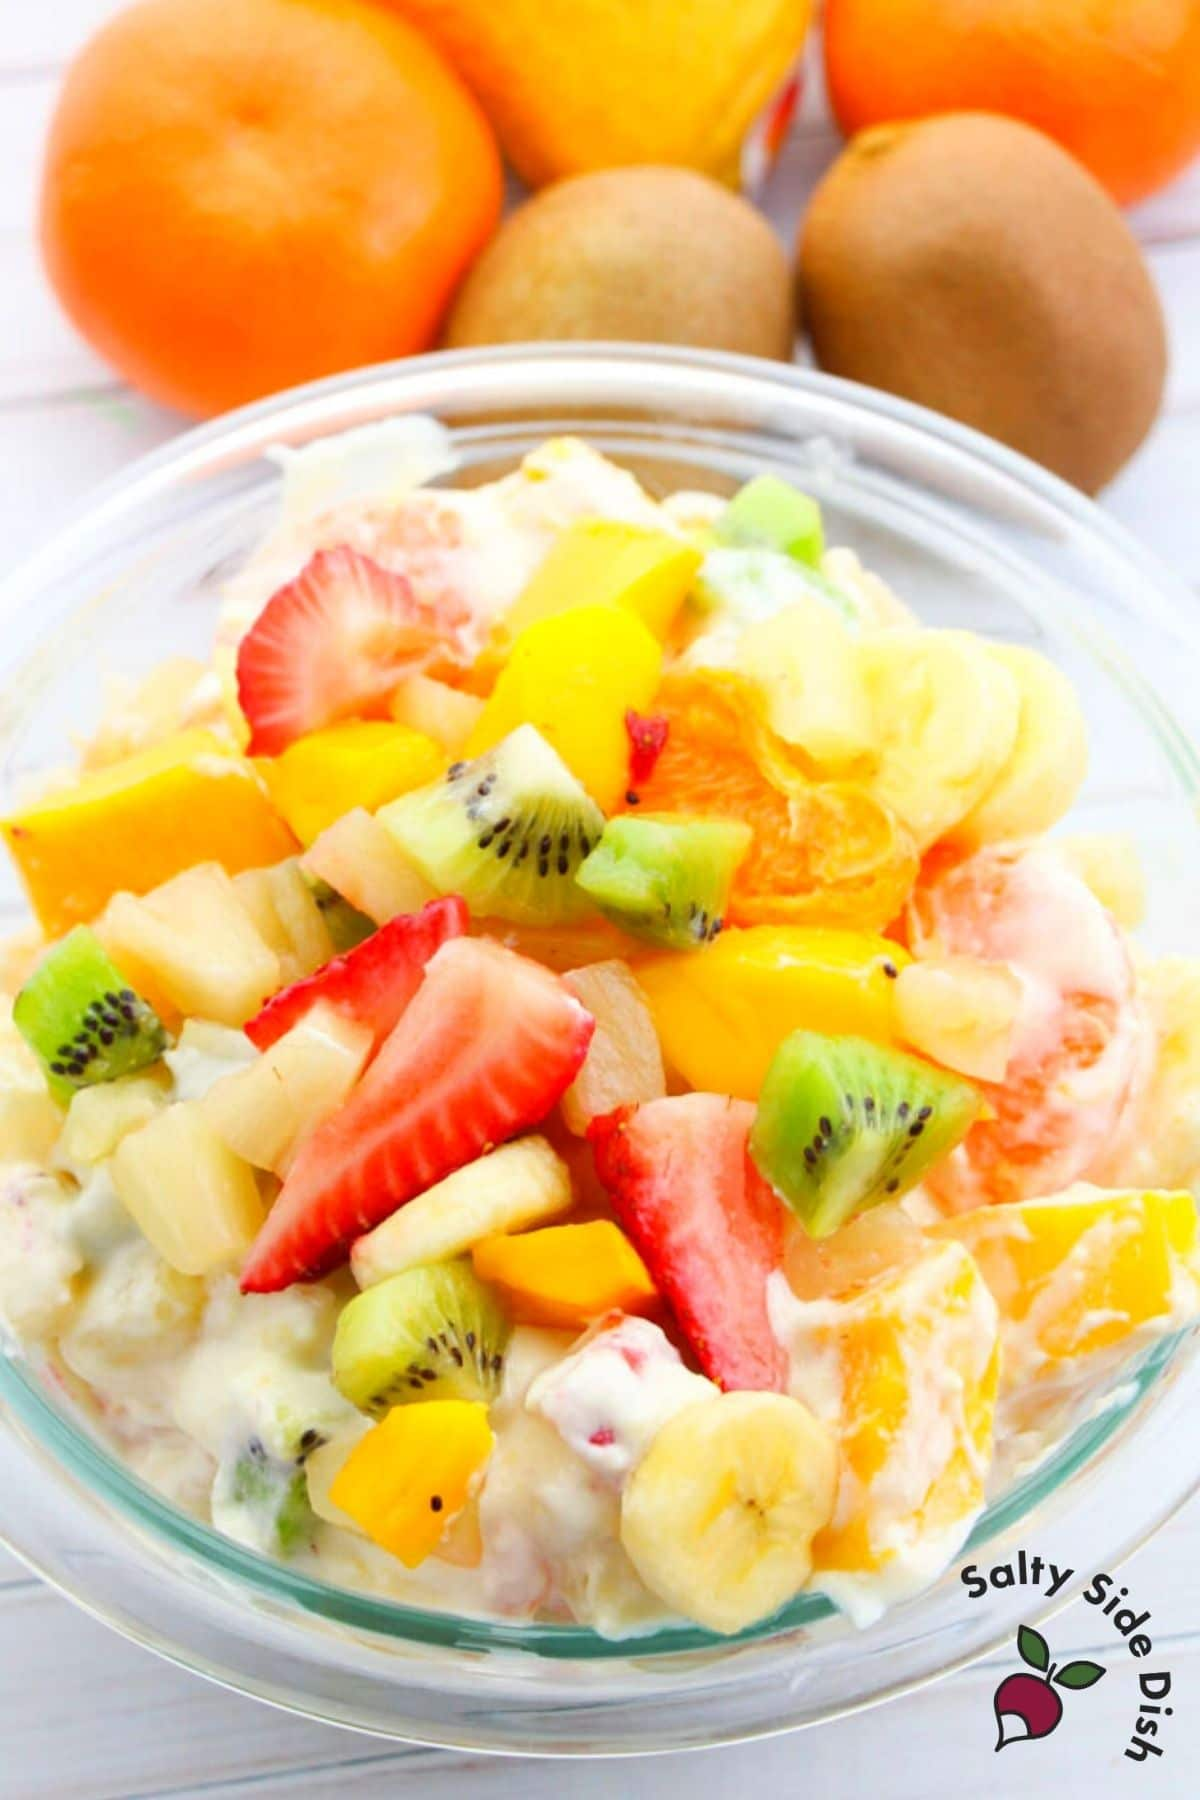 fruit and pudding in a bowl